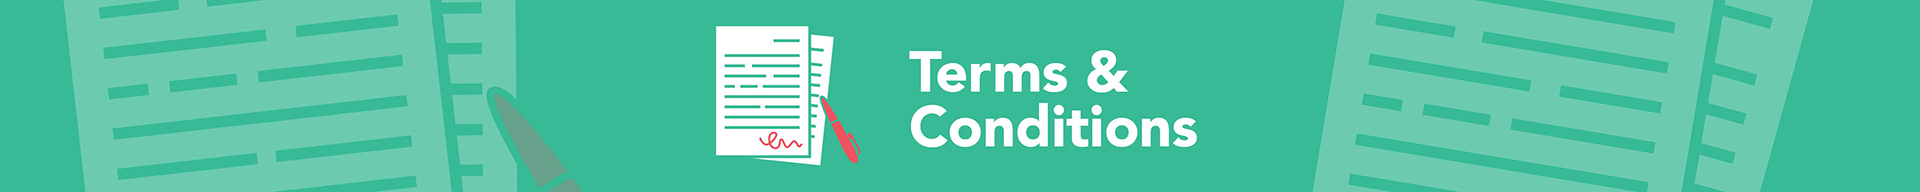 Header-Banners-Terms-Conditions